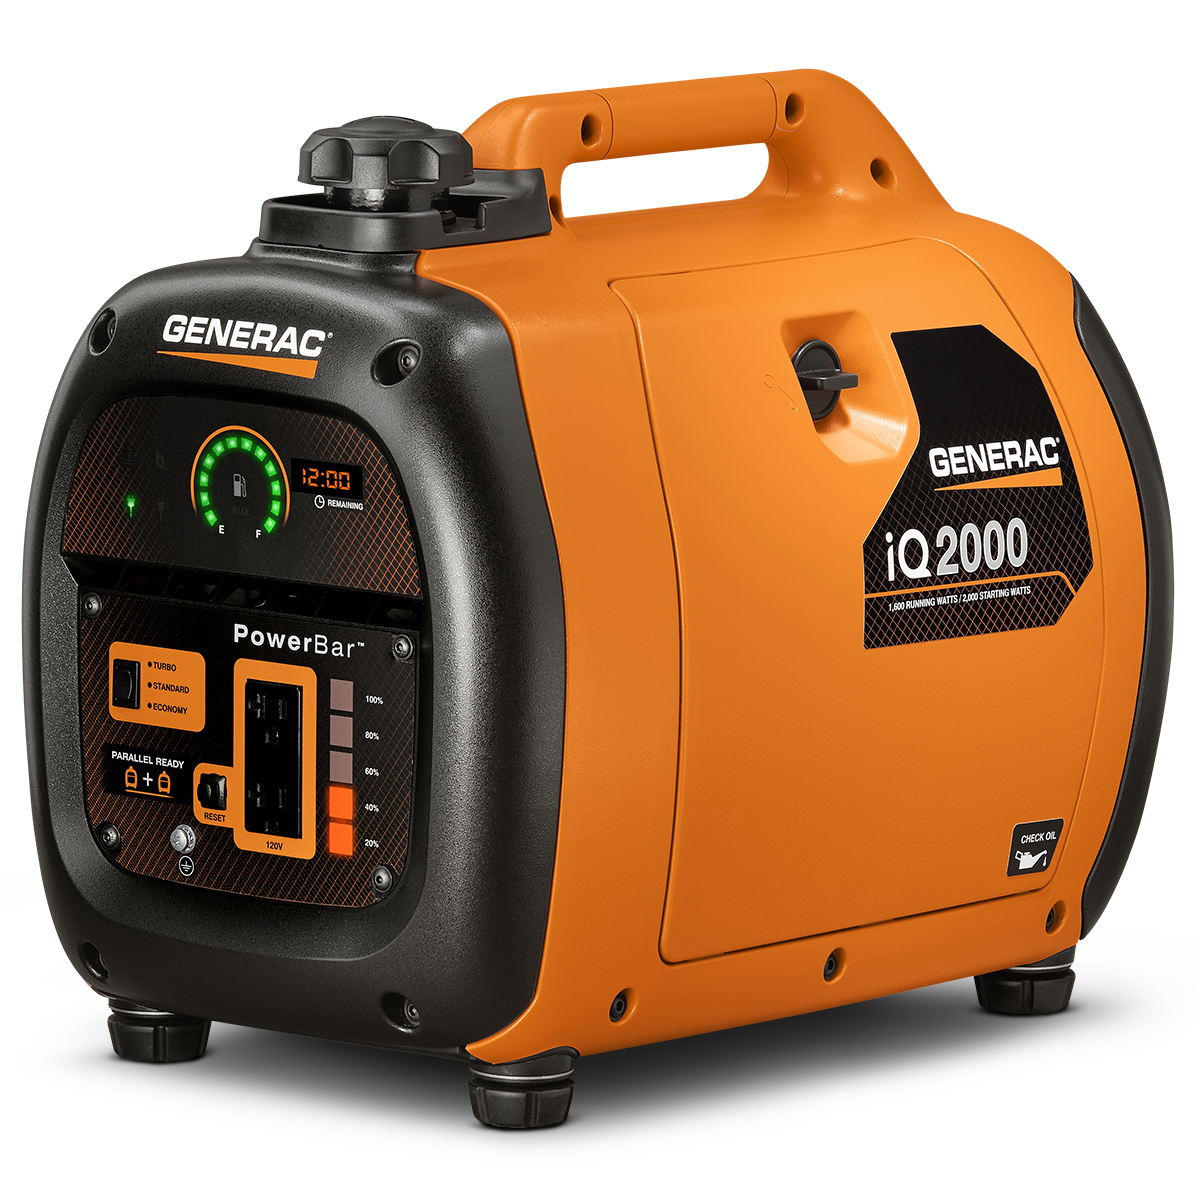 Portable Propane Fuel Inverter Generator Portable Oxygen For You Portable Oxygen Concentrators Approved For Air Travel Portable Closet White: Generac 6866 IQ2000 2,000 Watt Portable Inverter Gas